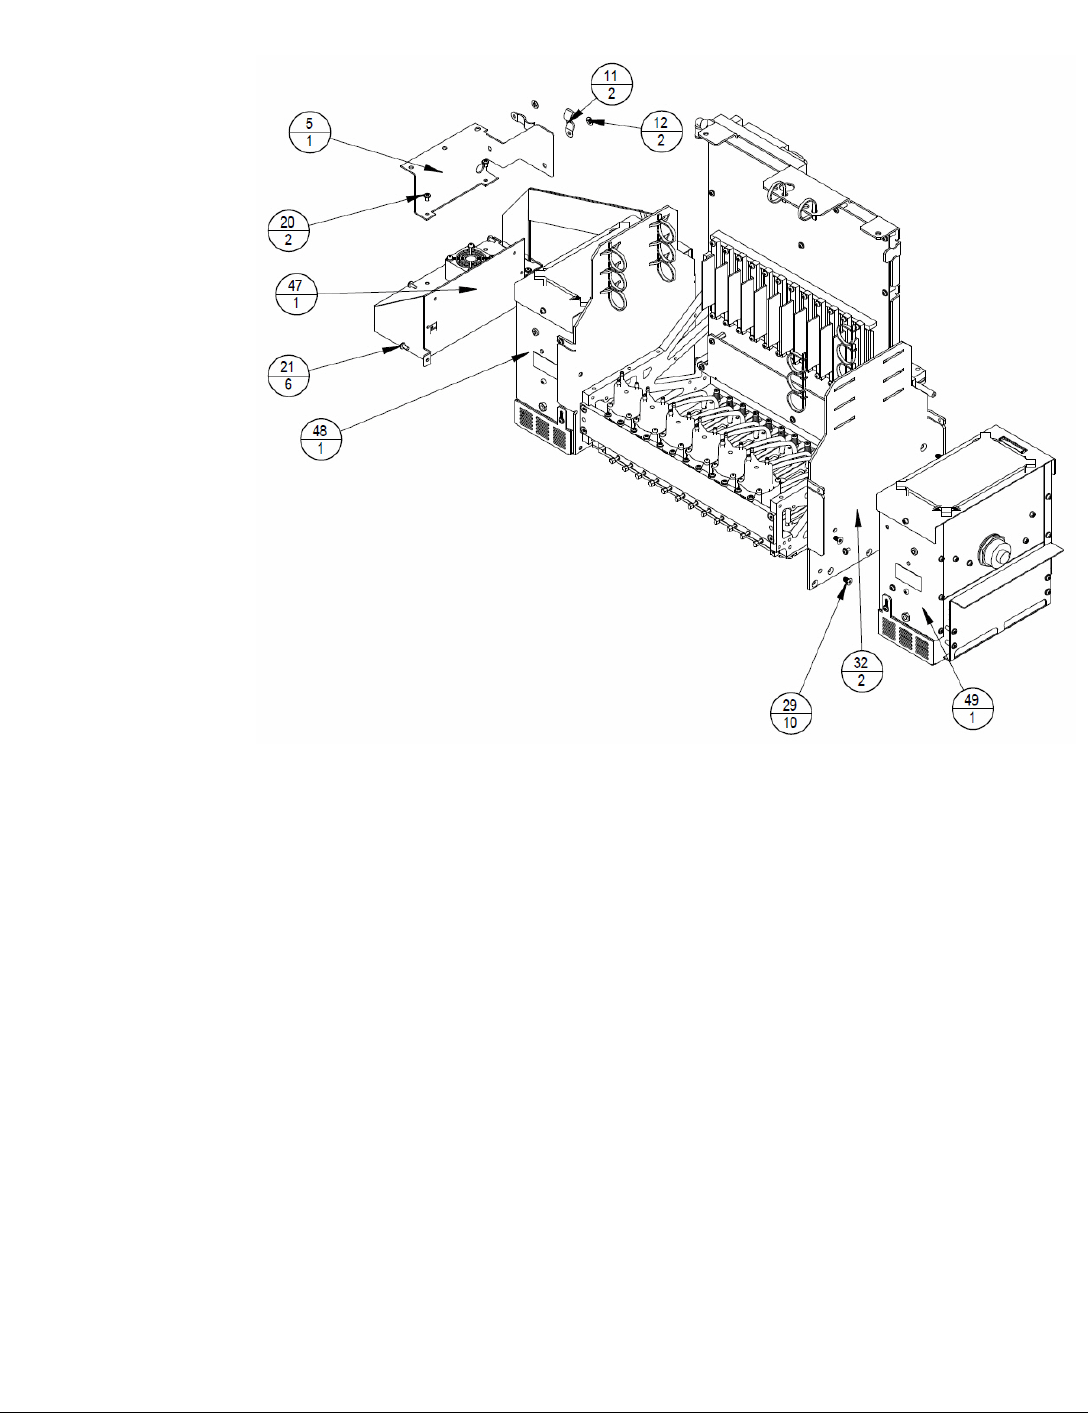 Cq114 90035 rev b hp scitex fb500 fb700 service manual page 41 of 510